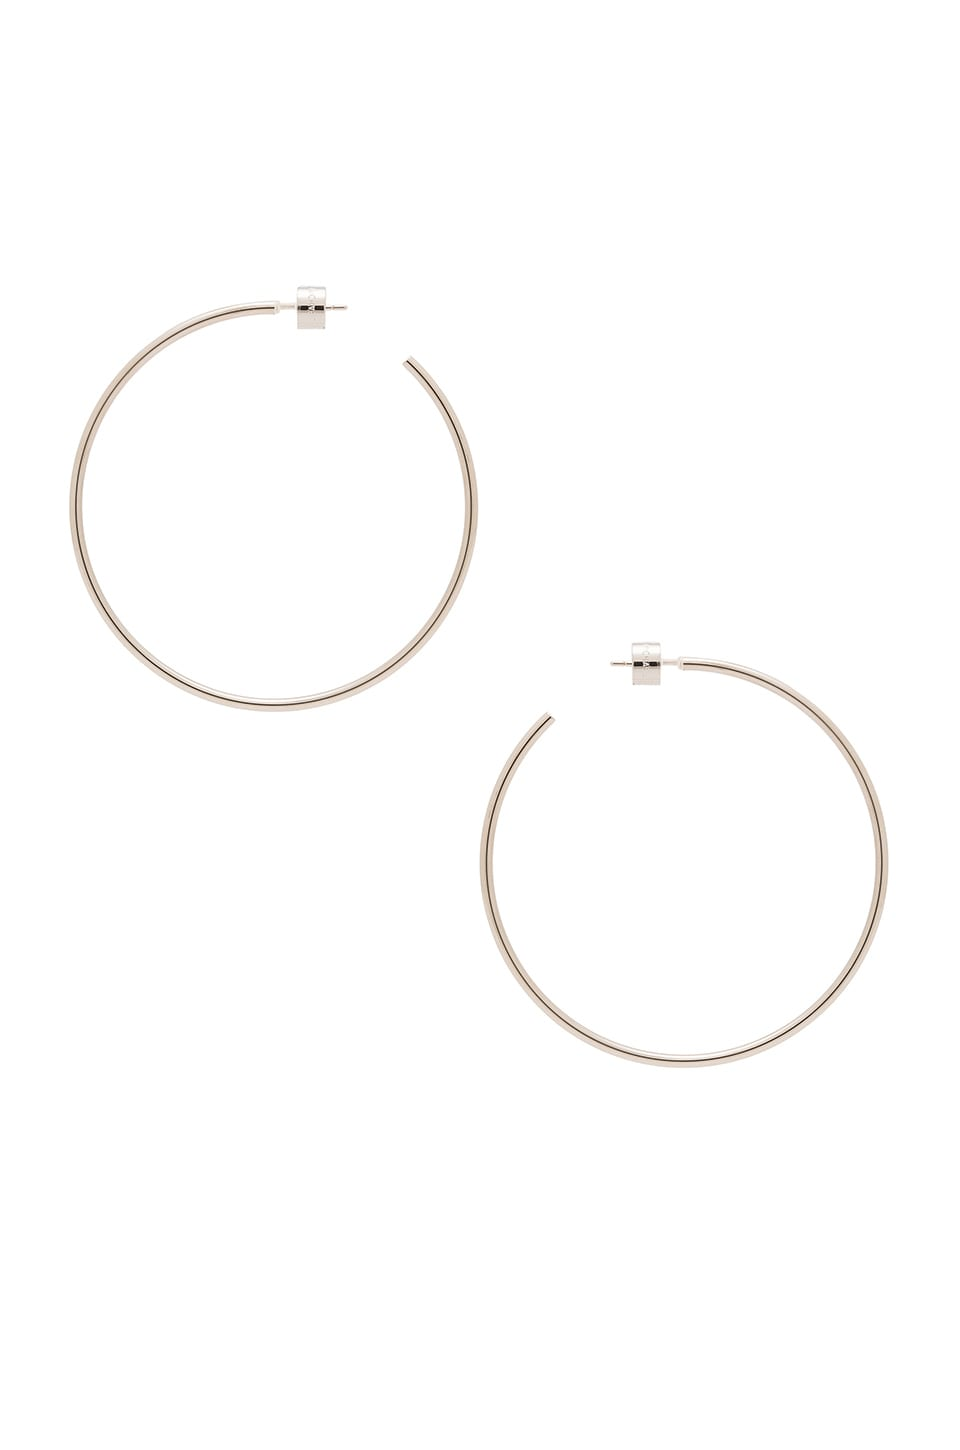 Michael Kors Large Hoop Earring in Silver